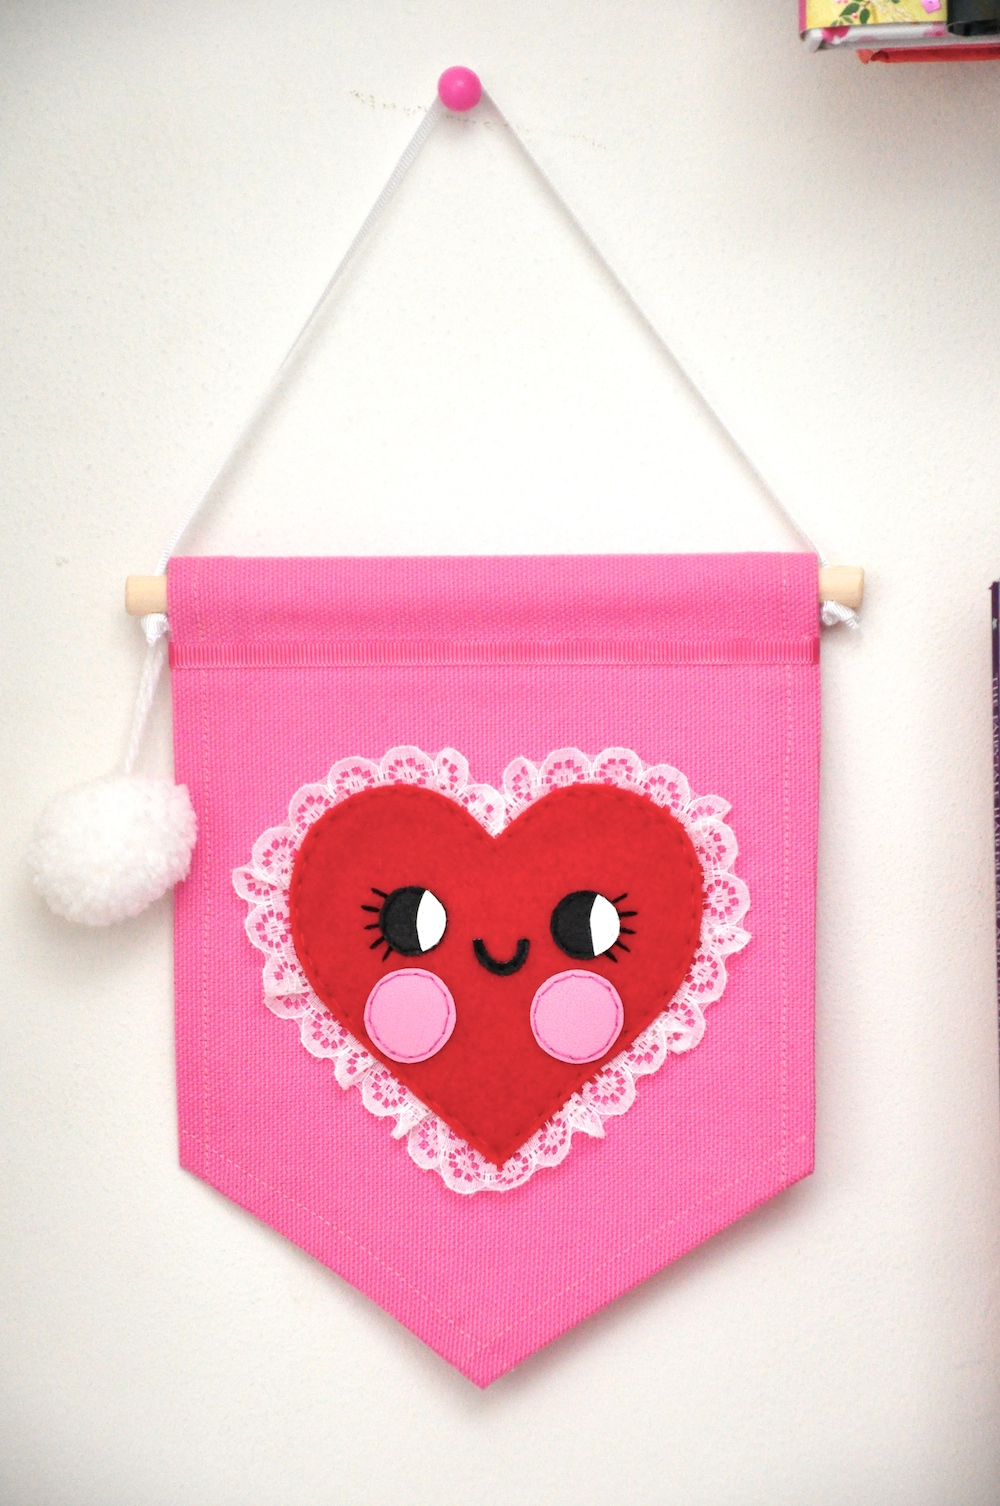 noodle_doll_nelly_banner_heart